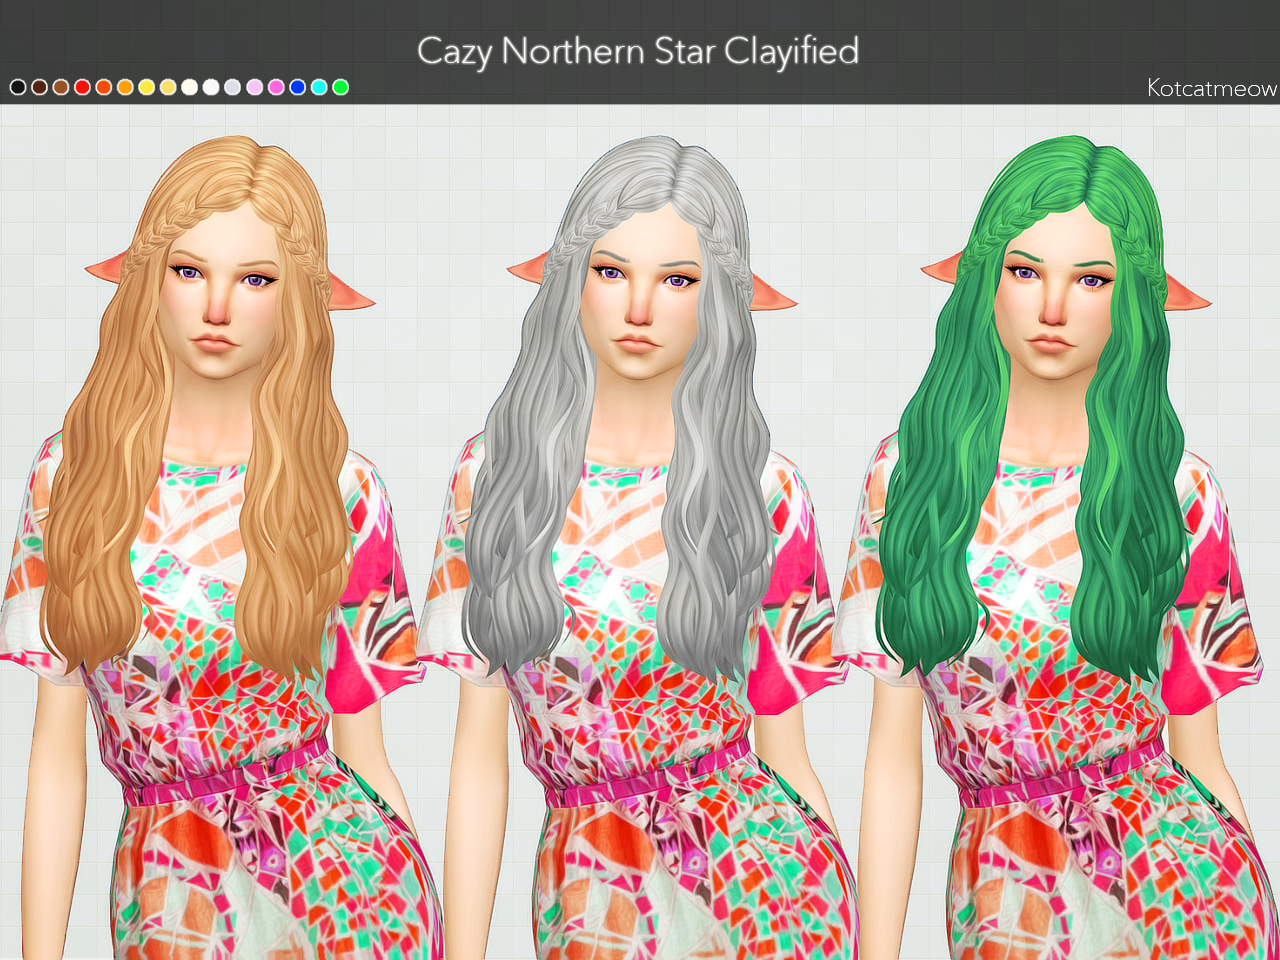 Cazy Northern Star Hair Clayified by Kotcatmeow